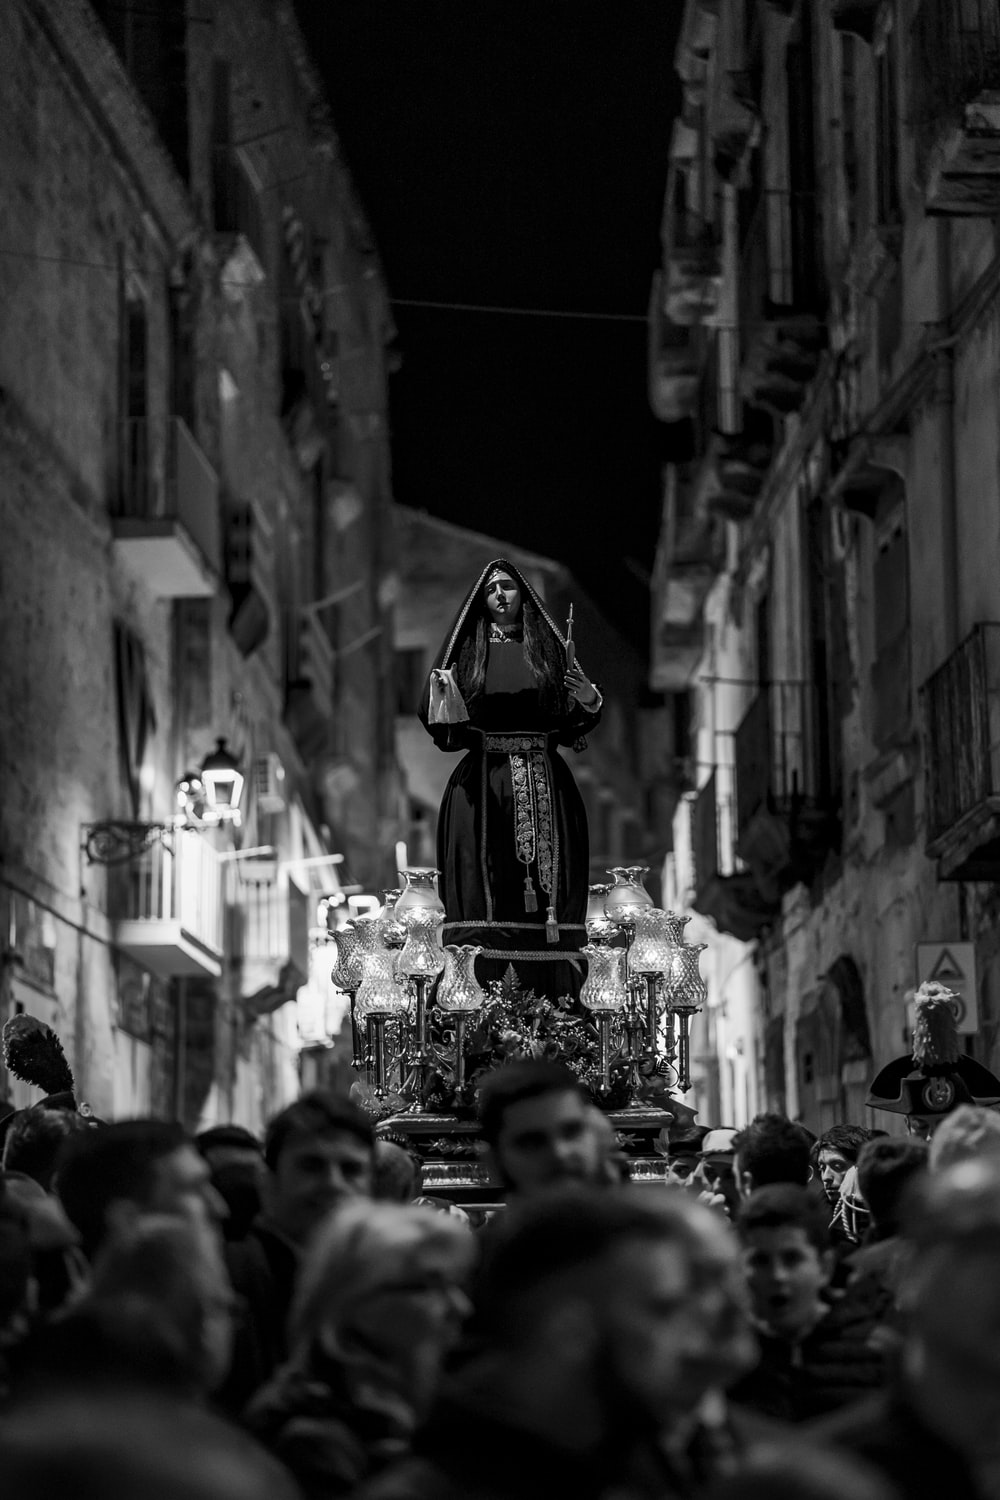 grayscale photography of group of people carrying religious statuette